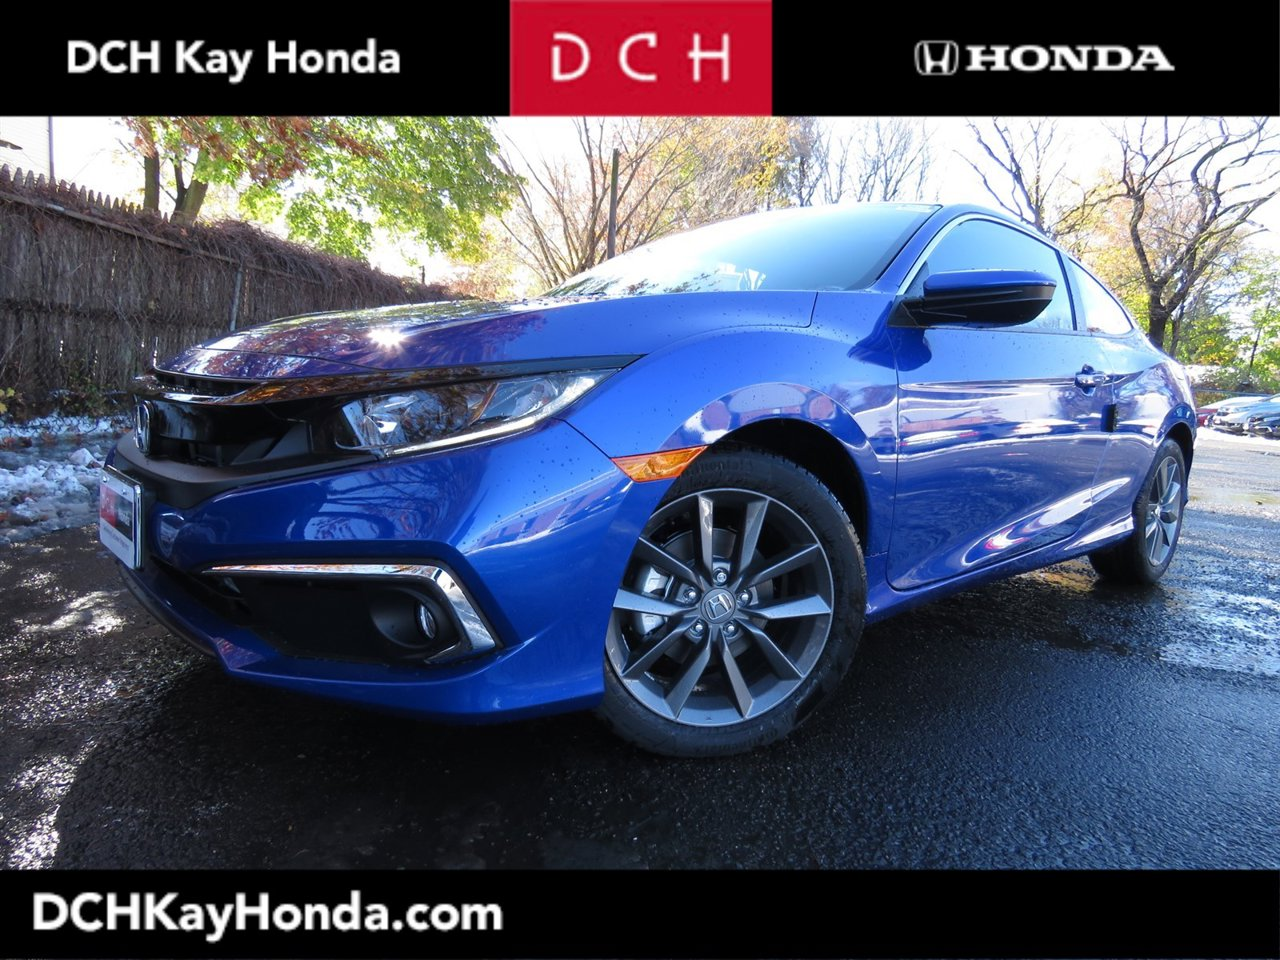 New 2020 Honda Civic Coupe in Eatontown, NJ